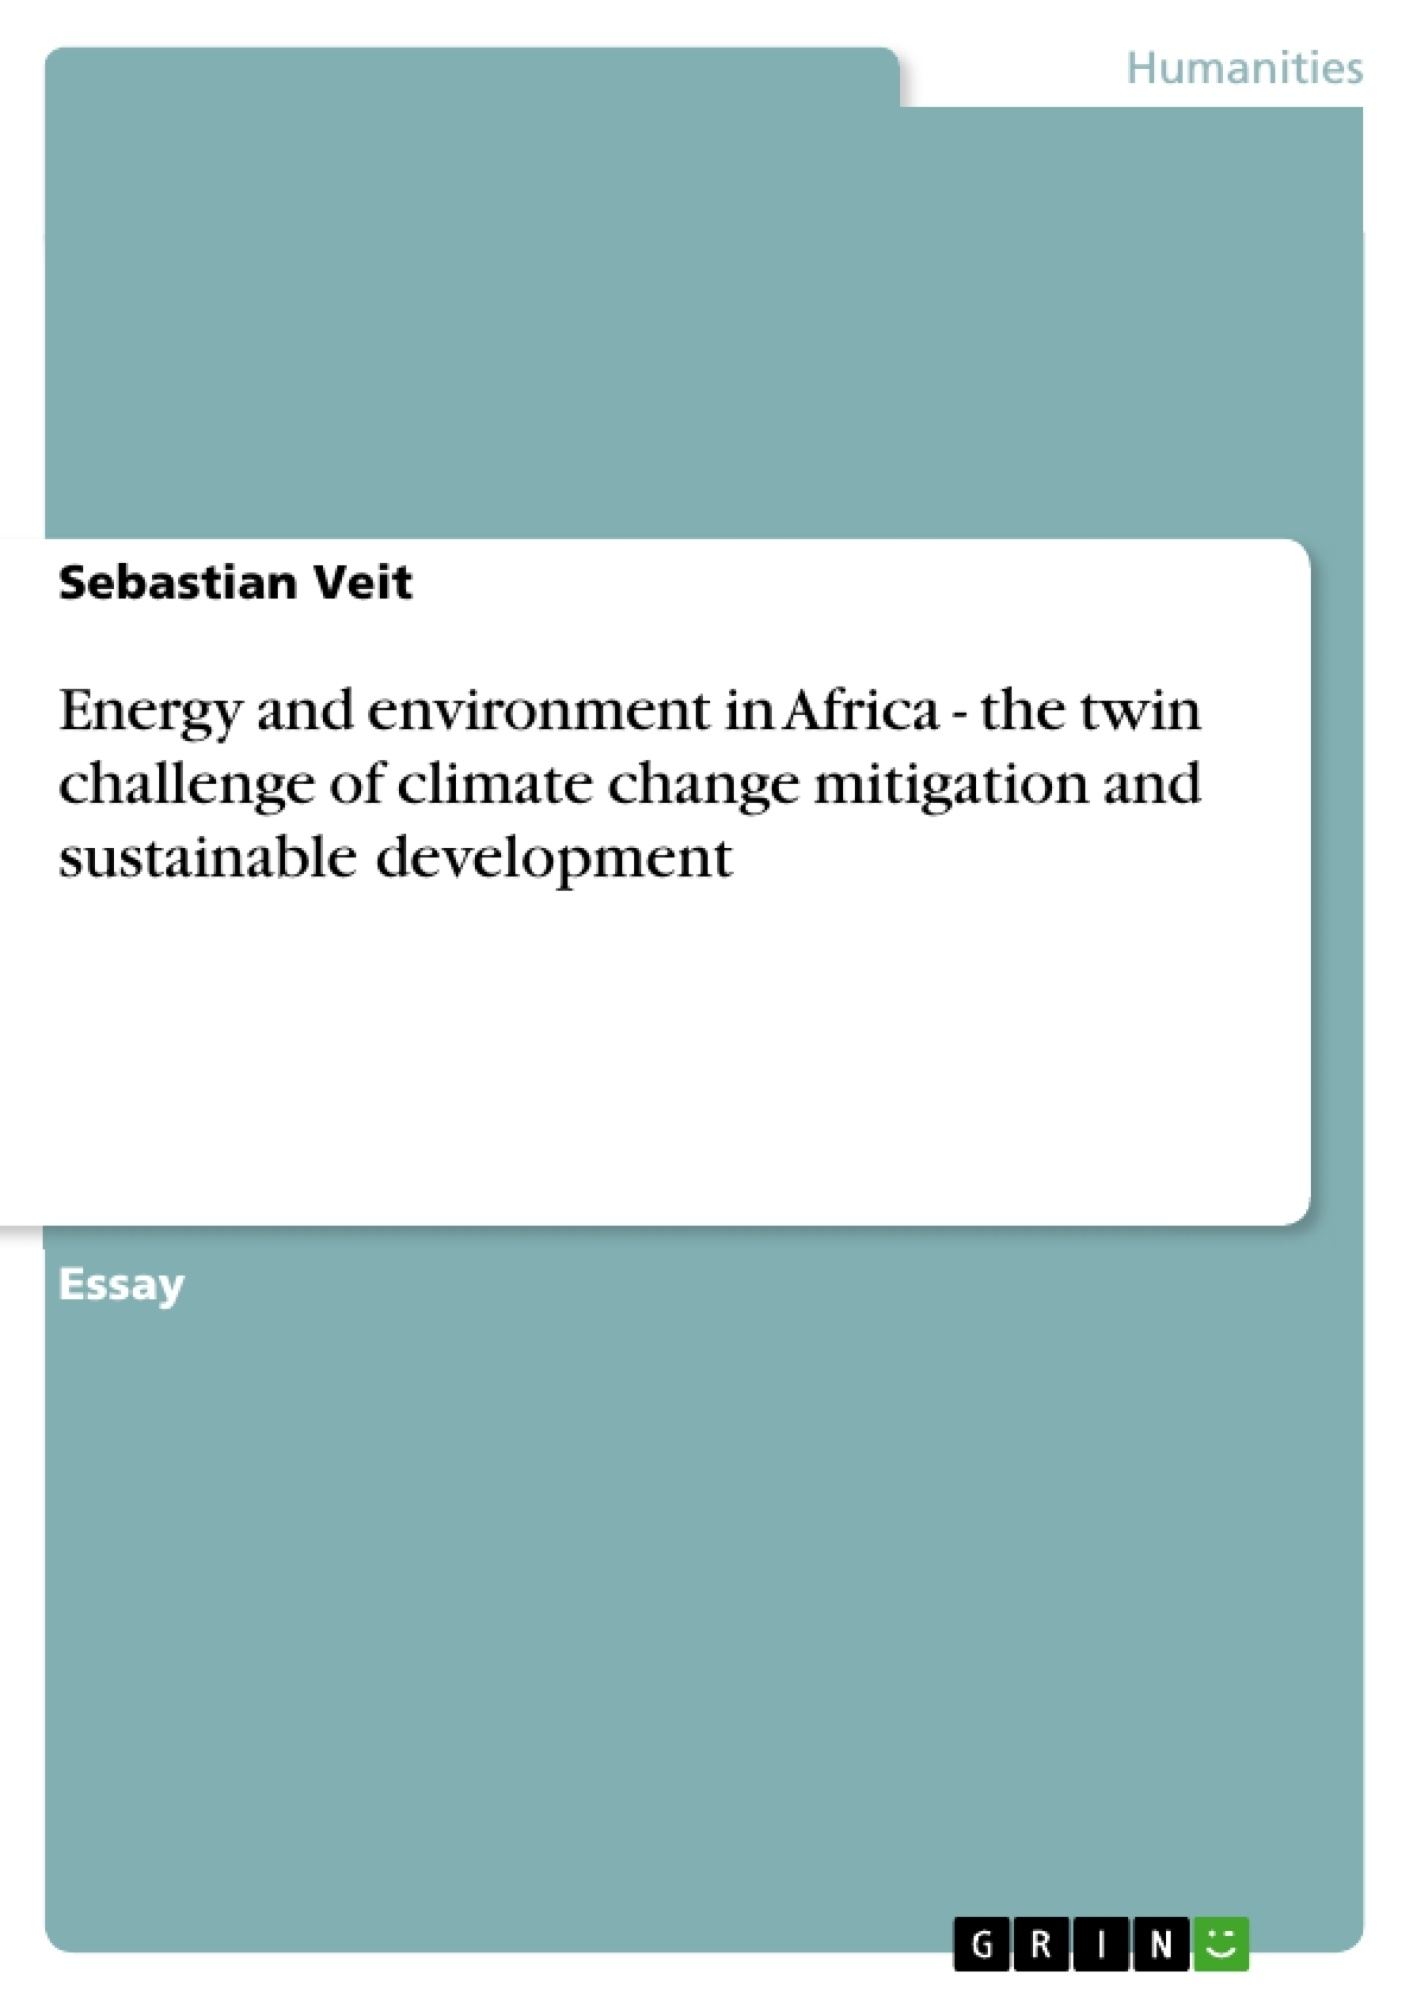 Title: Energy and environment in Africa - the twin challenge of climate change mitigation and sustainable development